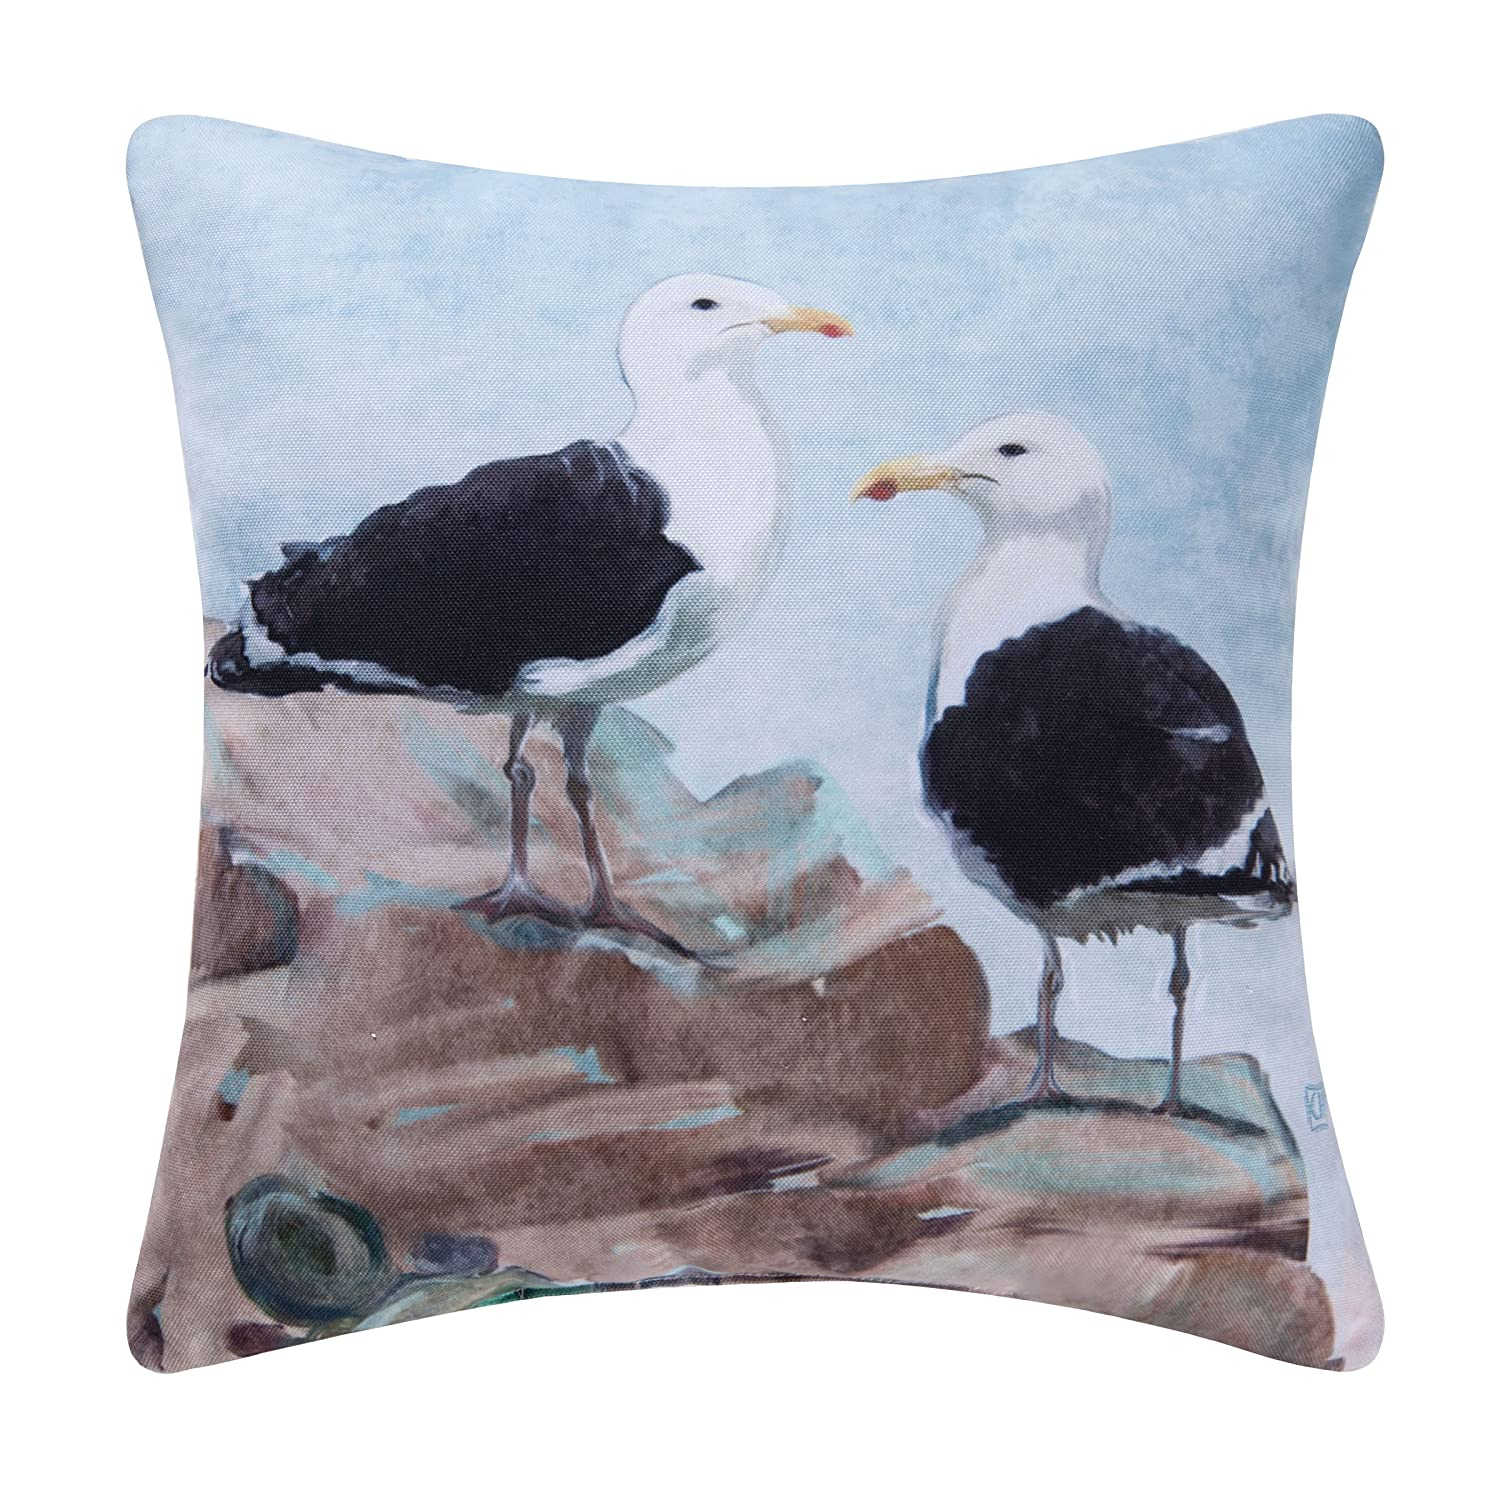 18x18 Inches, Seagulls Pillow